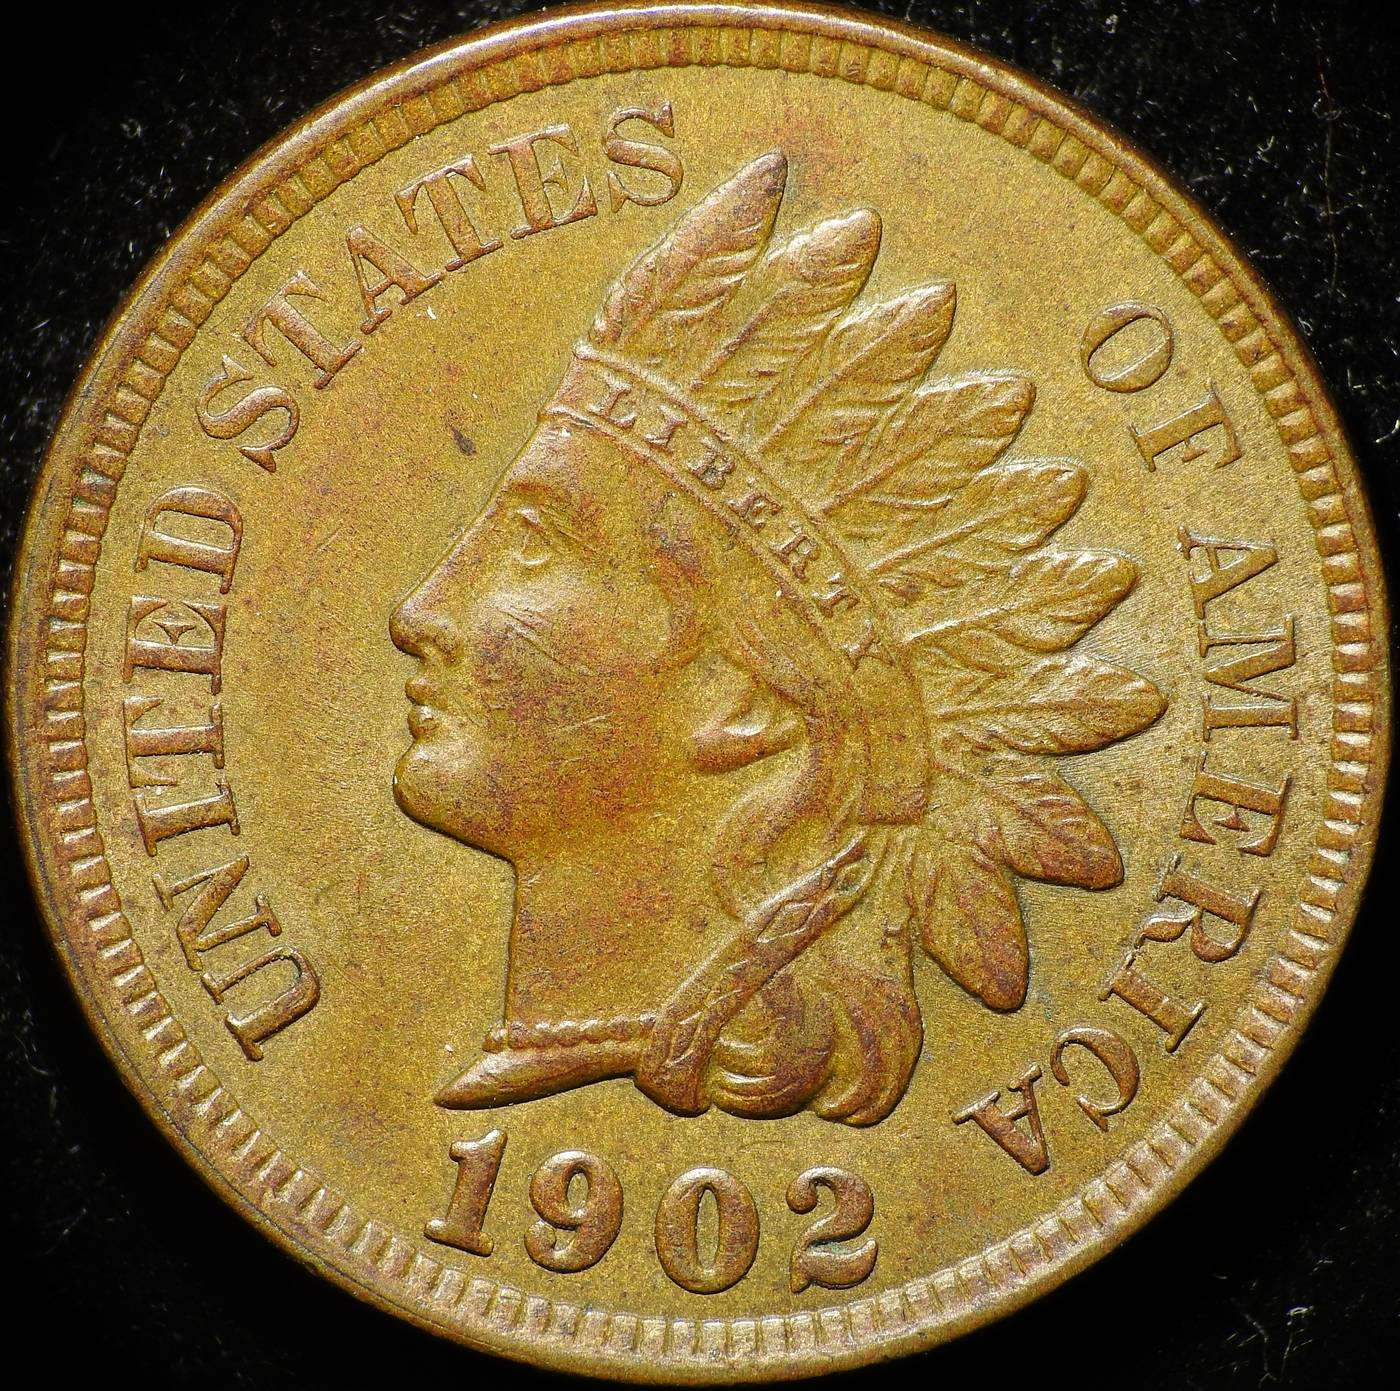 1902 RPD-012 - Indian Head Penny